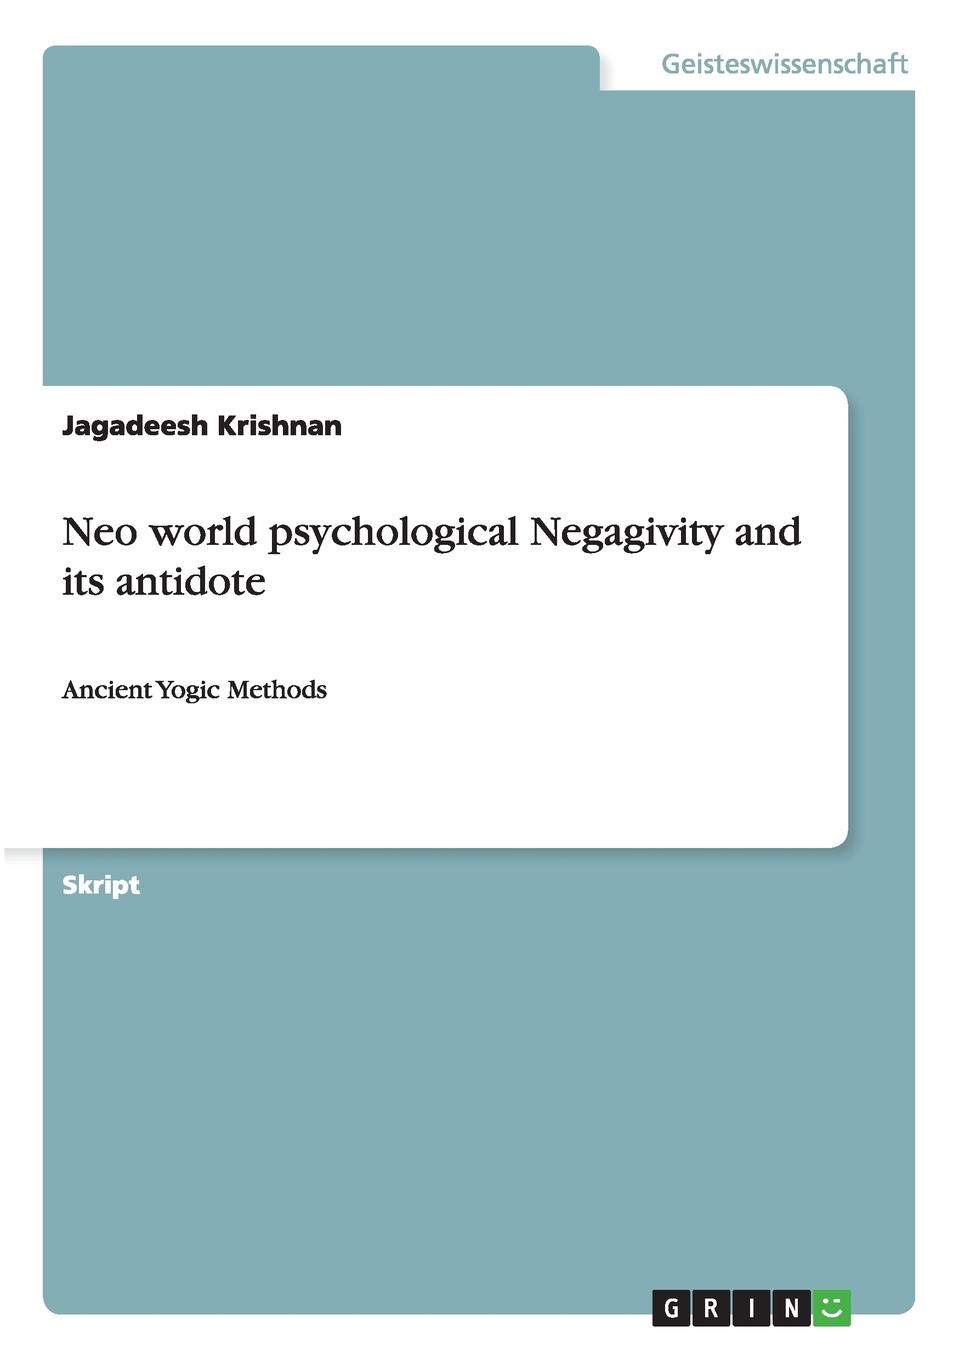 Jagadeesh Krishnan Neo world psychological Negagivity and its antidote sandra amor neuroinflammation and cns disorders